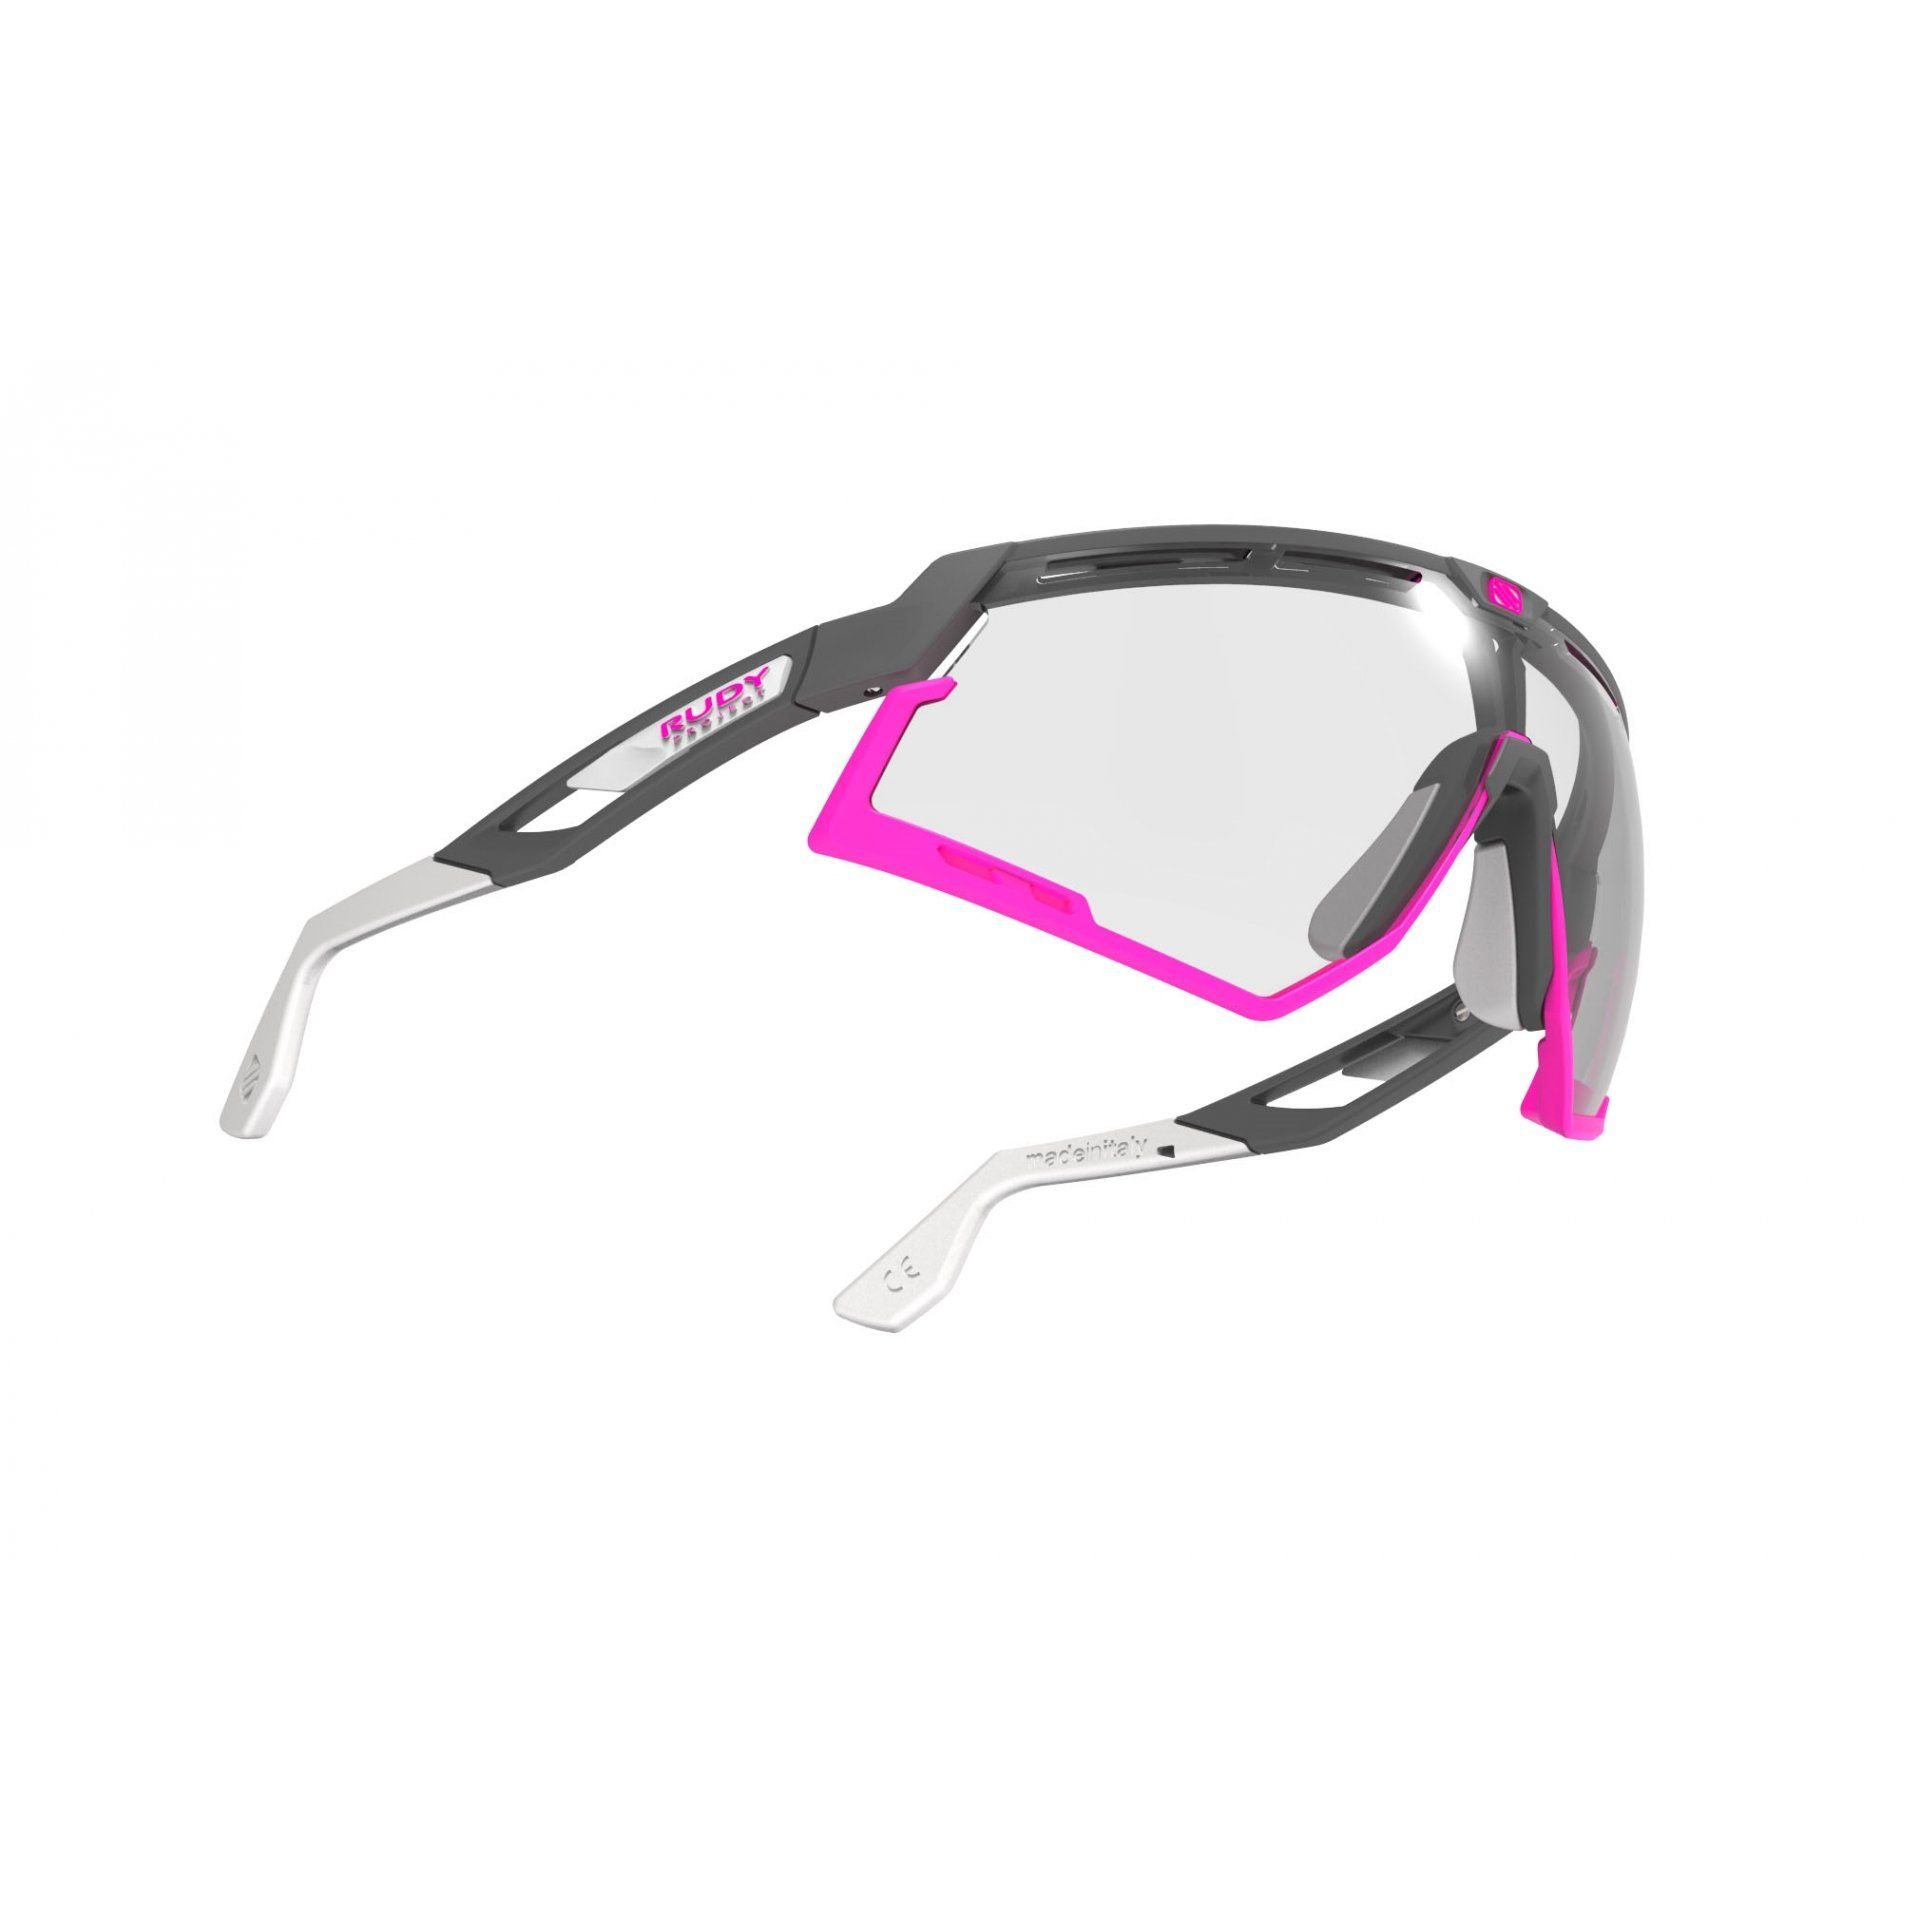 OKULARY RUDY PROJECT DEFENDER PYOMBO MATTE|FUXIA+PHOTOCHROMIC BLACK 3